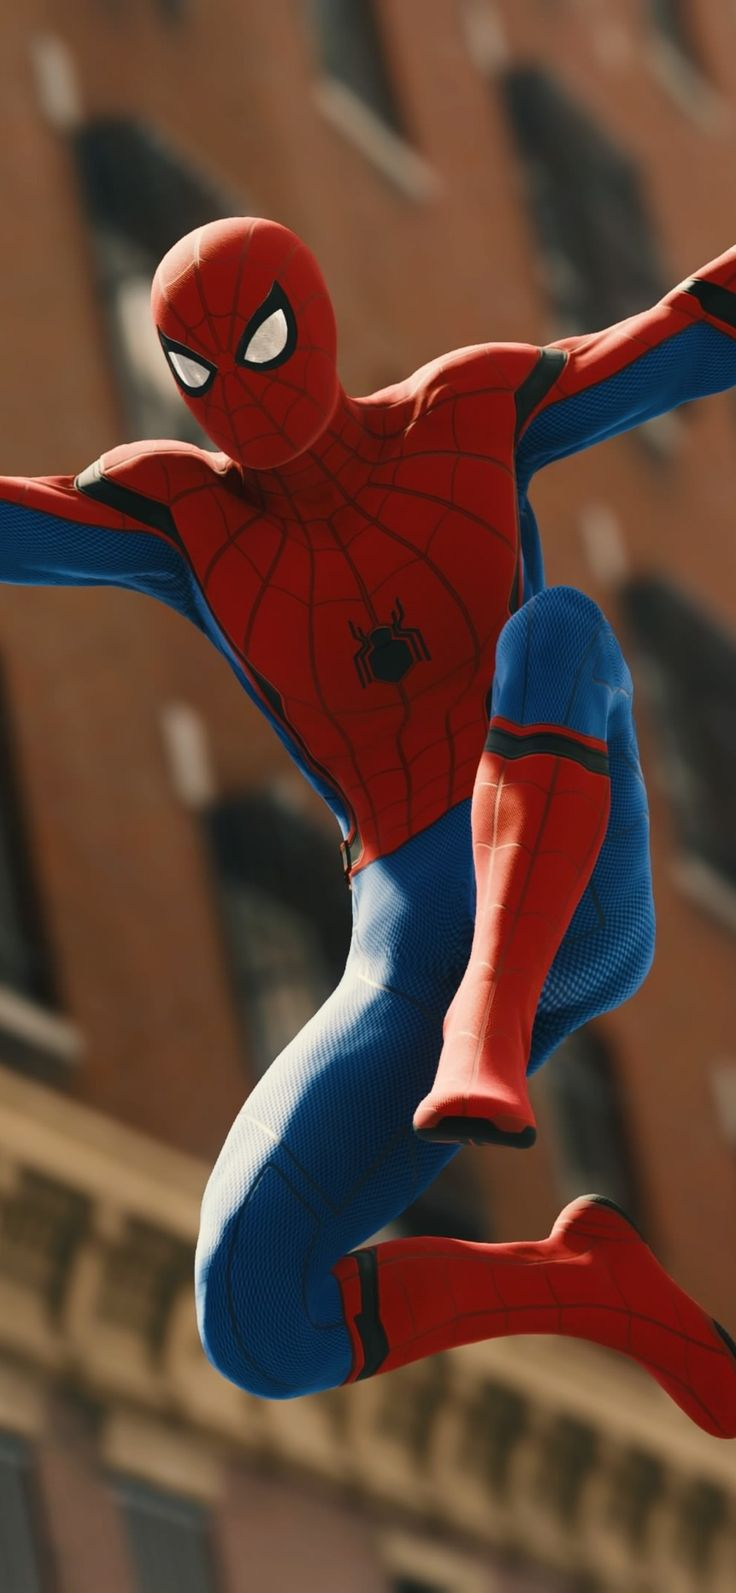 1125x2436 Spiderman Jumping 4k Iphone XS,Iphone 10,Iphone